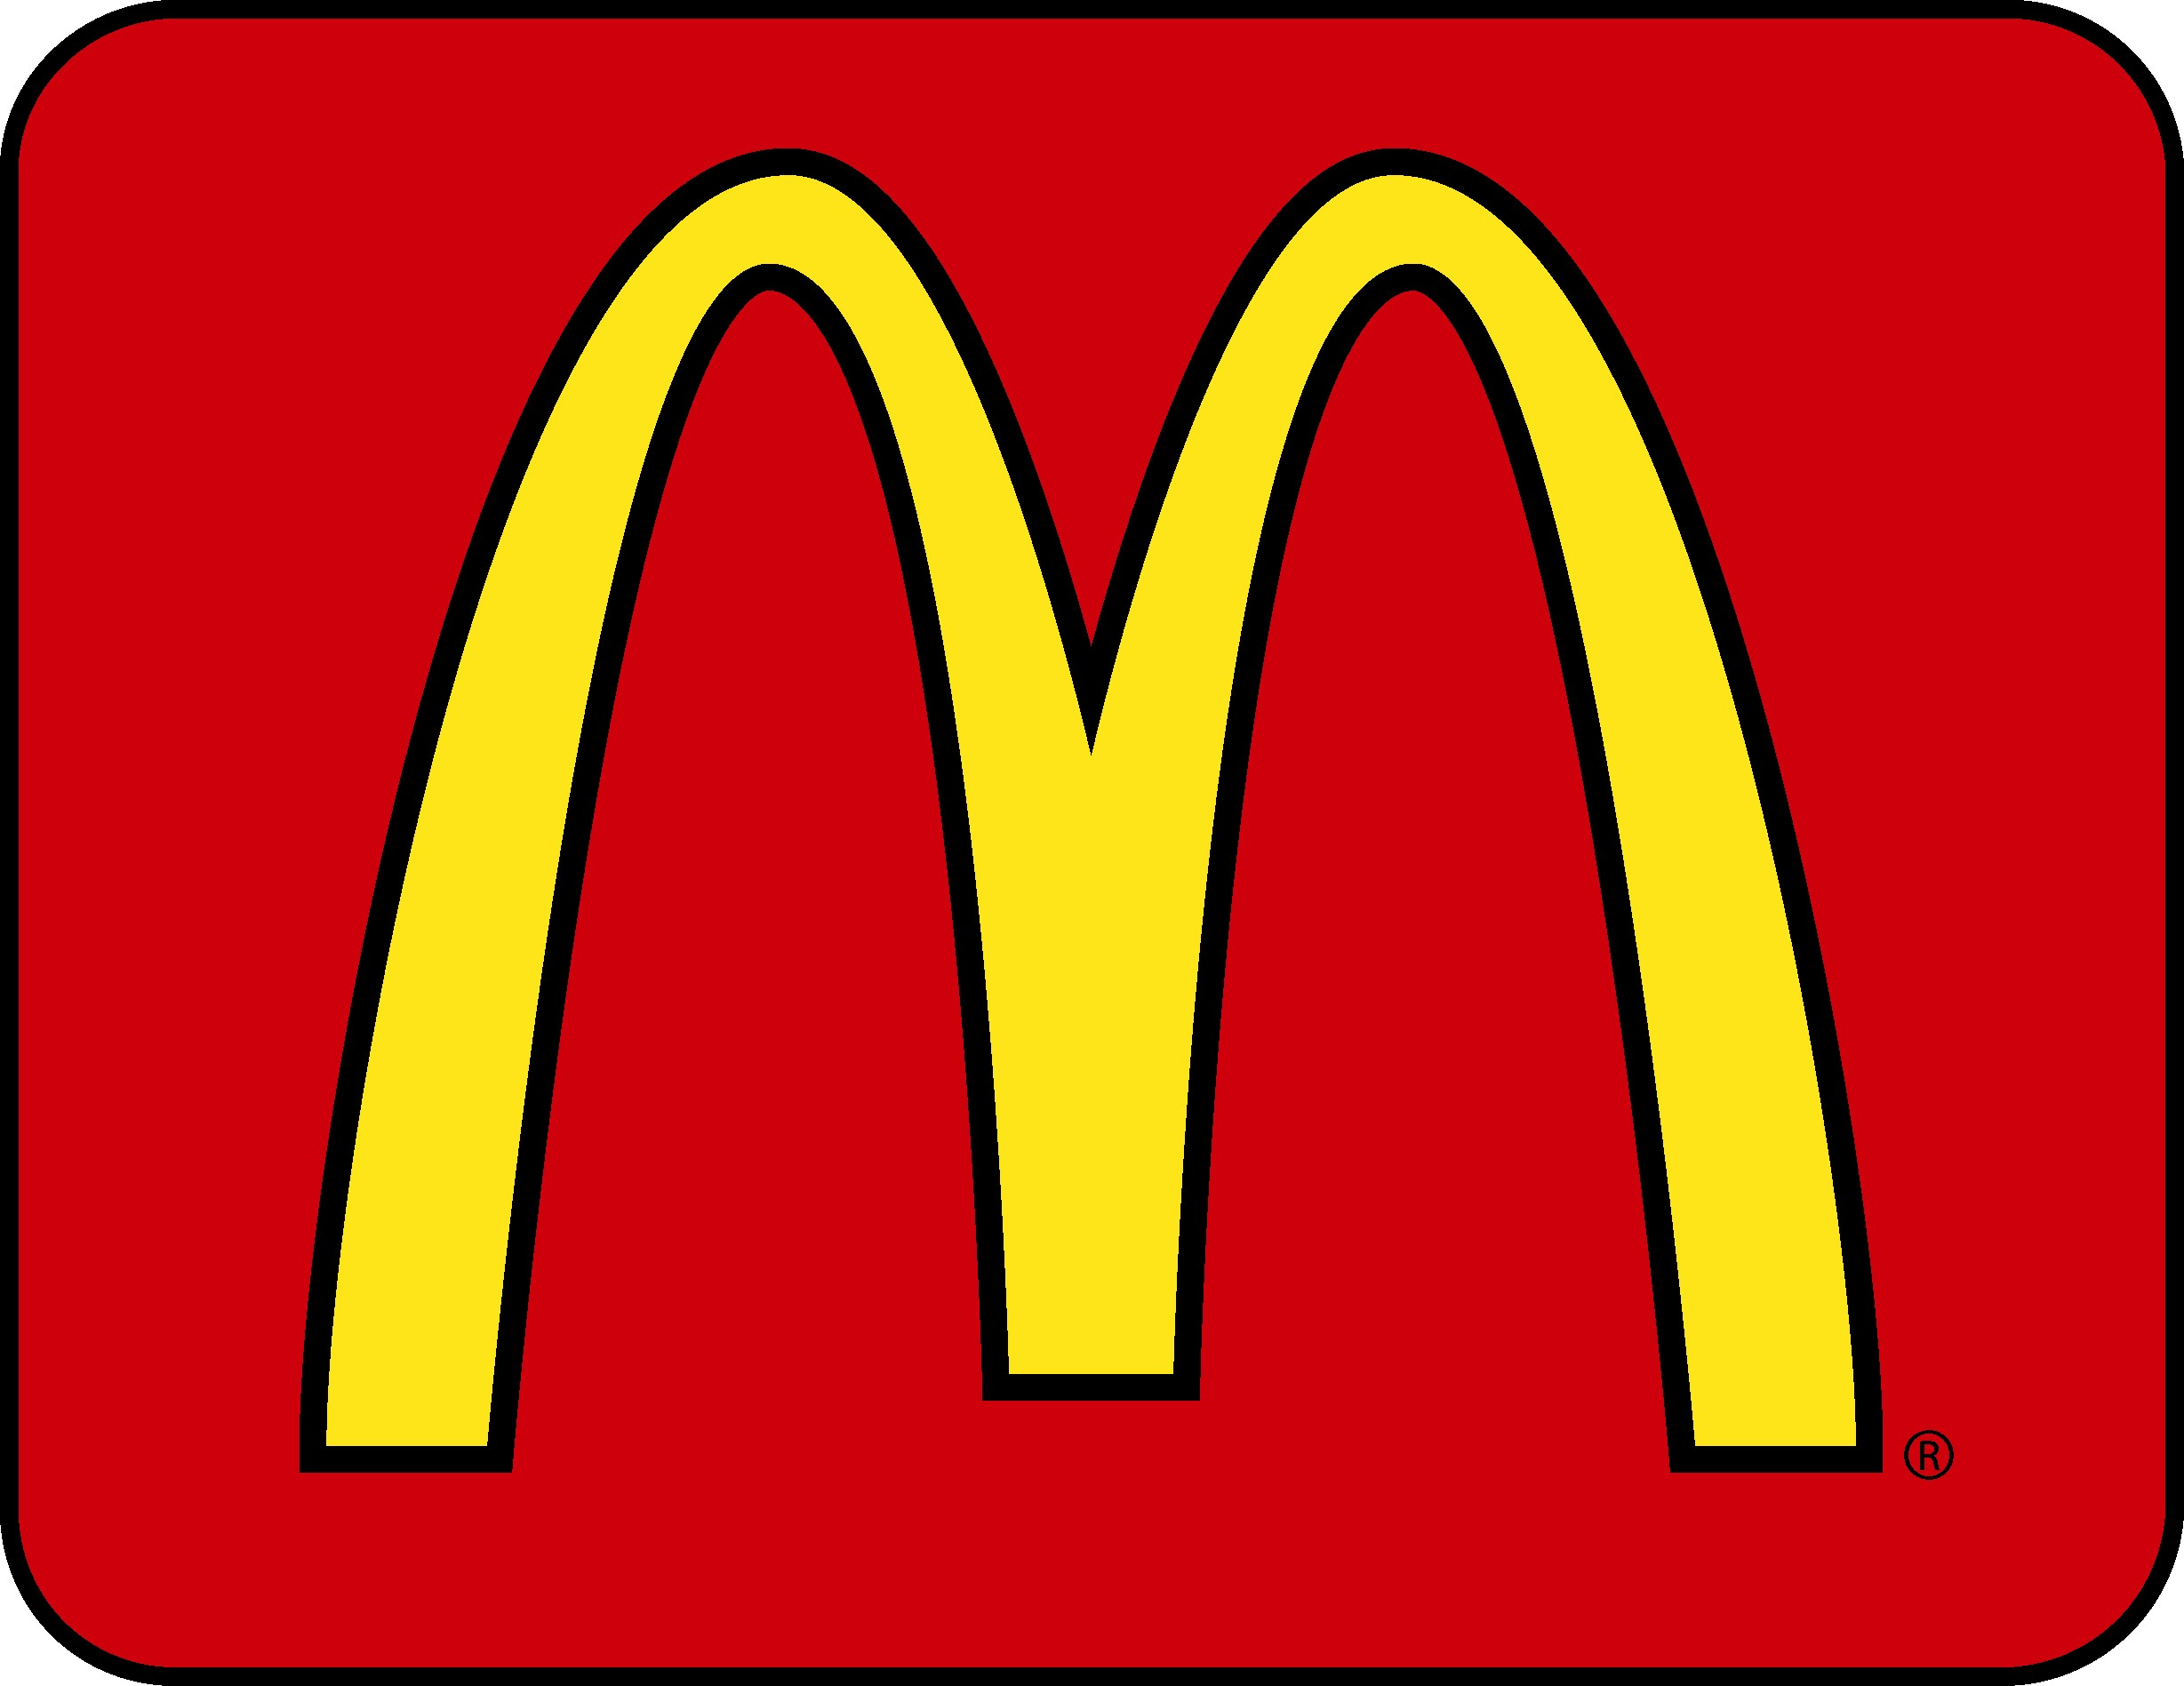 Mcdonalds arches clipart.